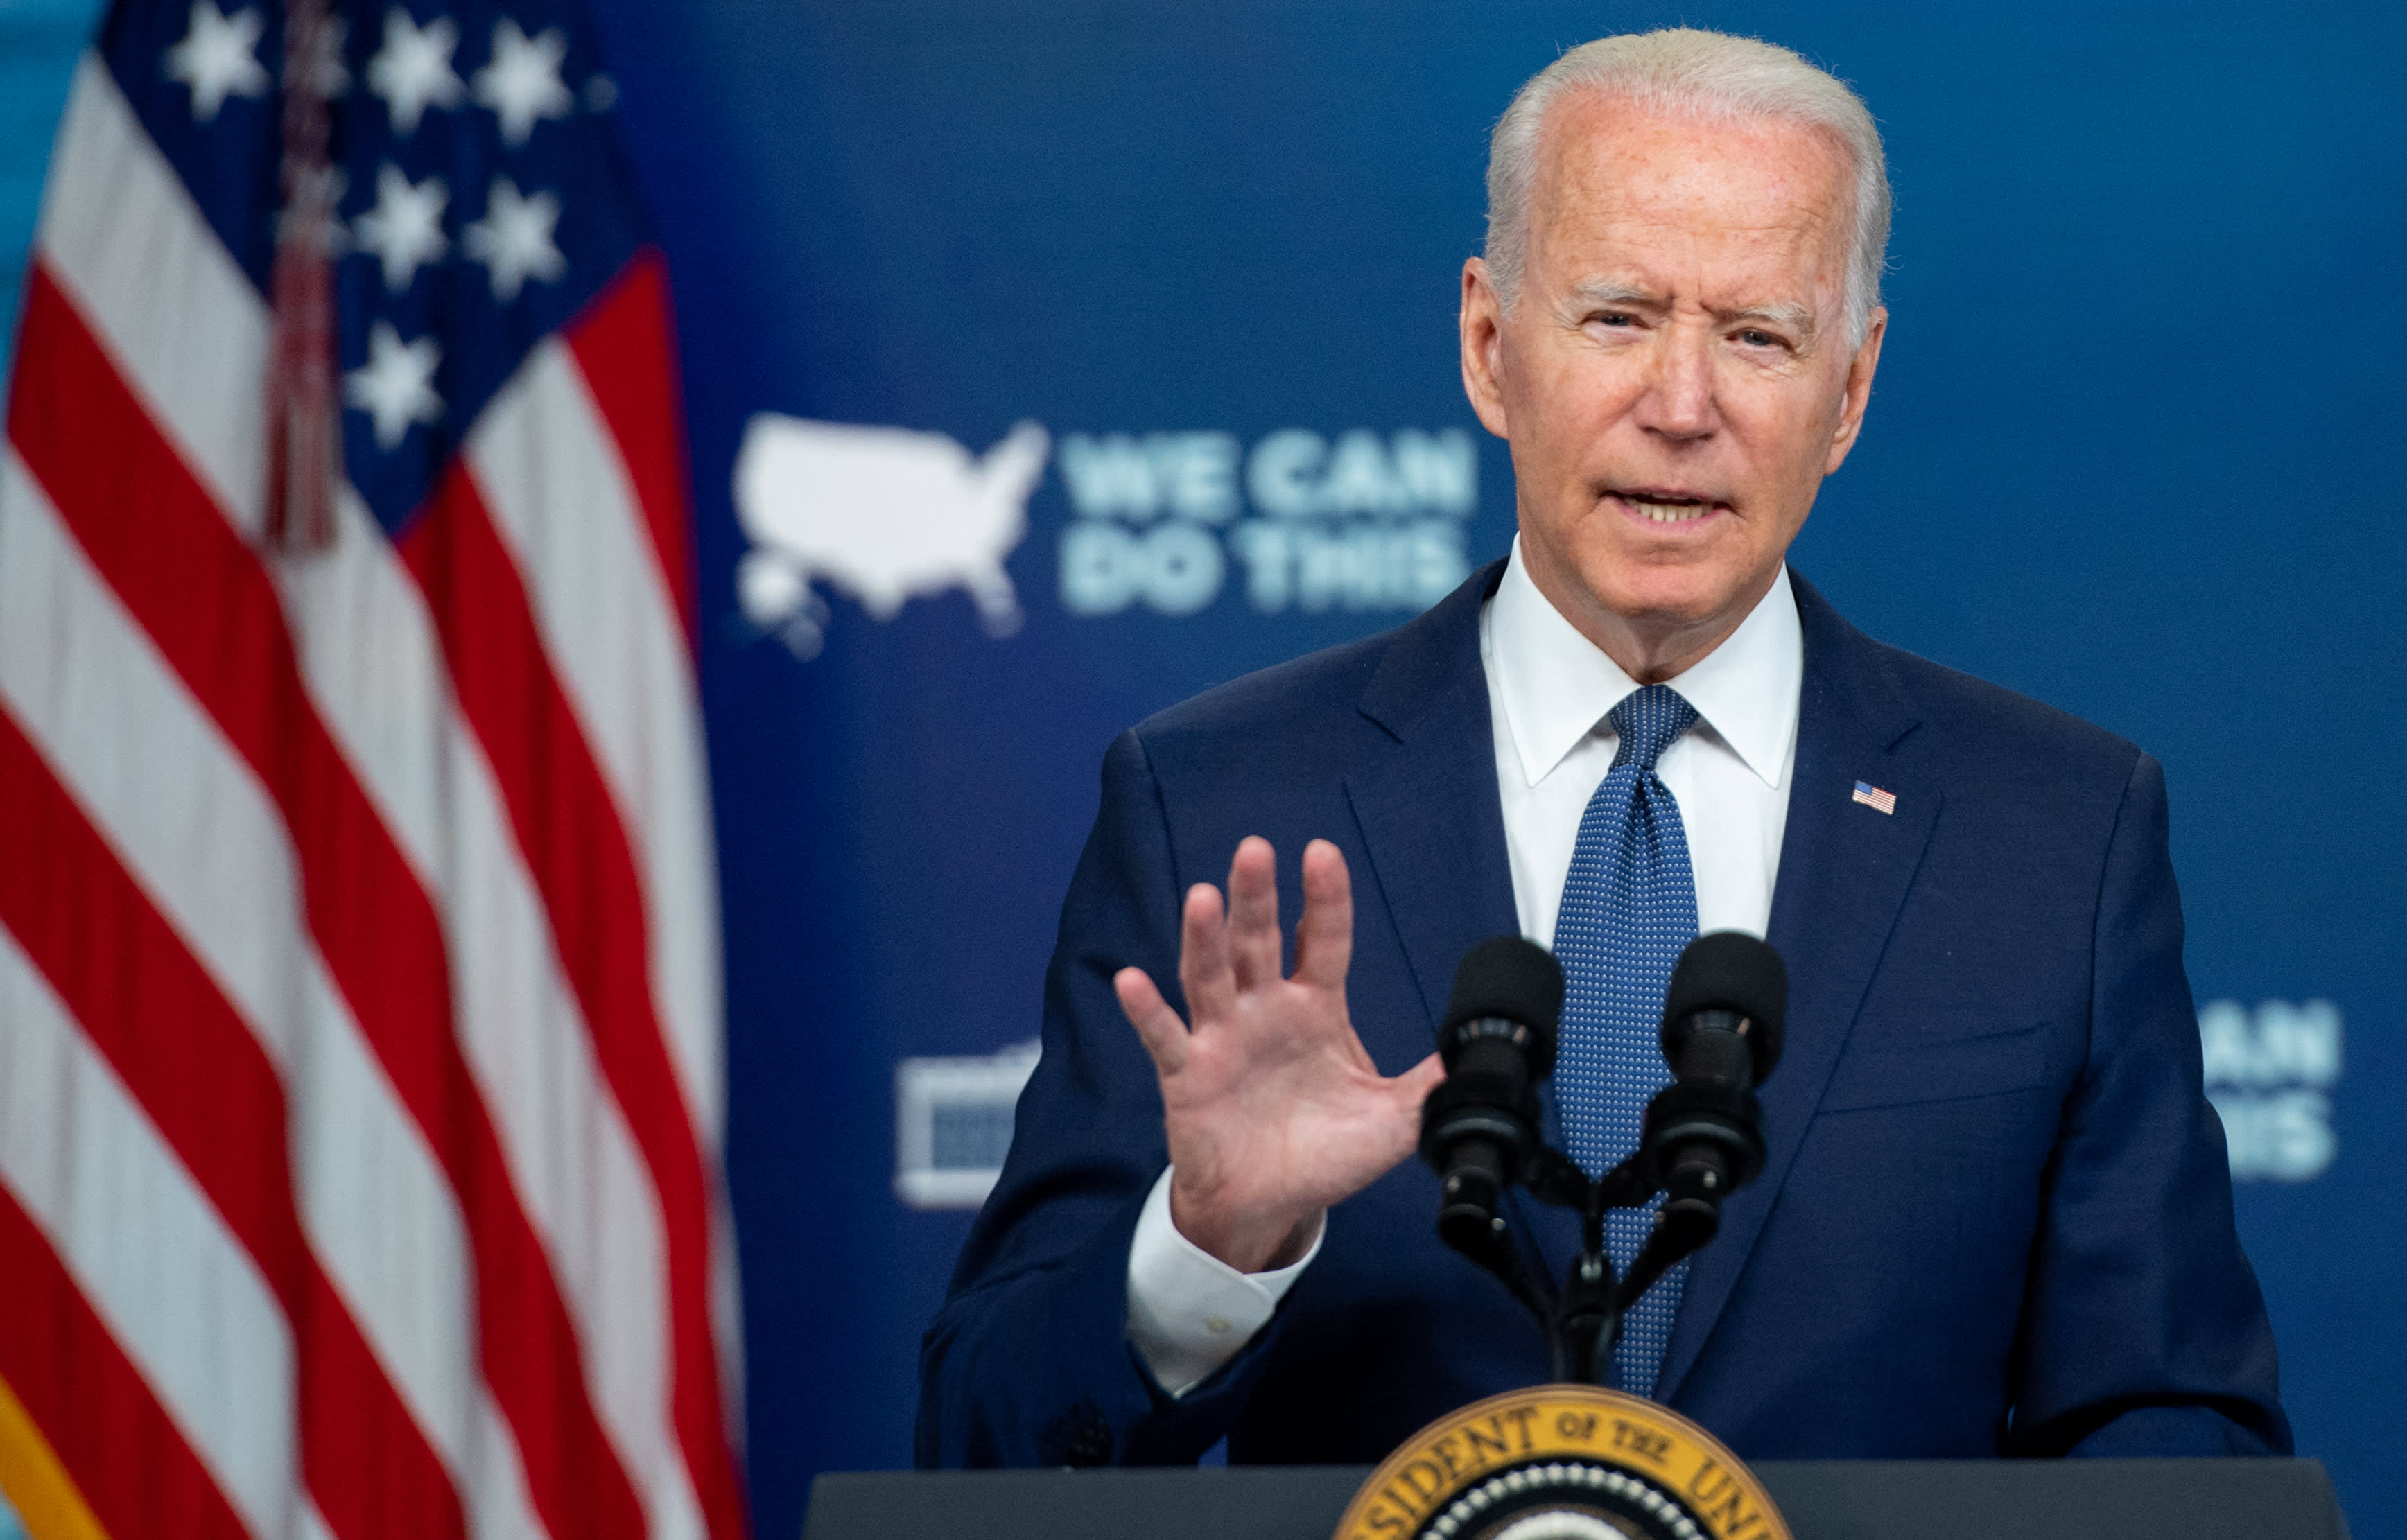 EXCLUSIVE: Biden Mileage Rule to Exceed Obama Climate Goal